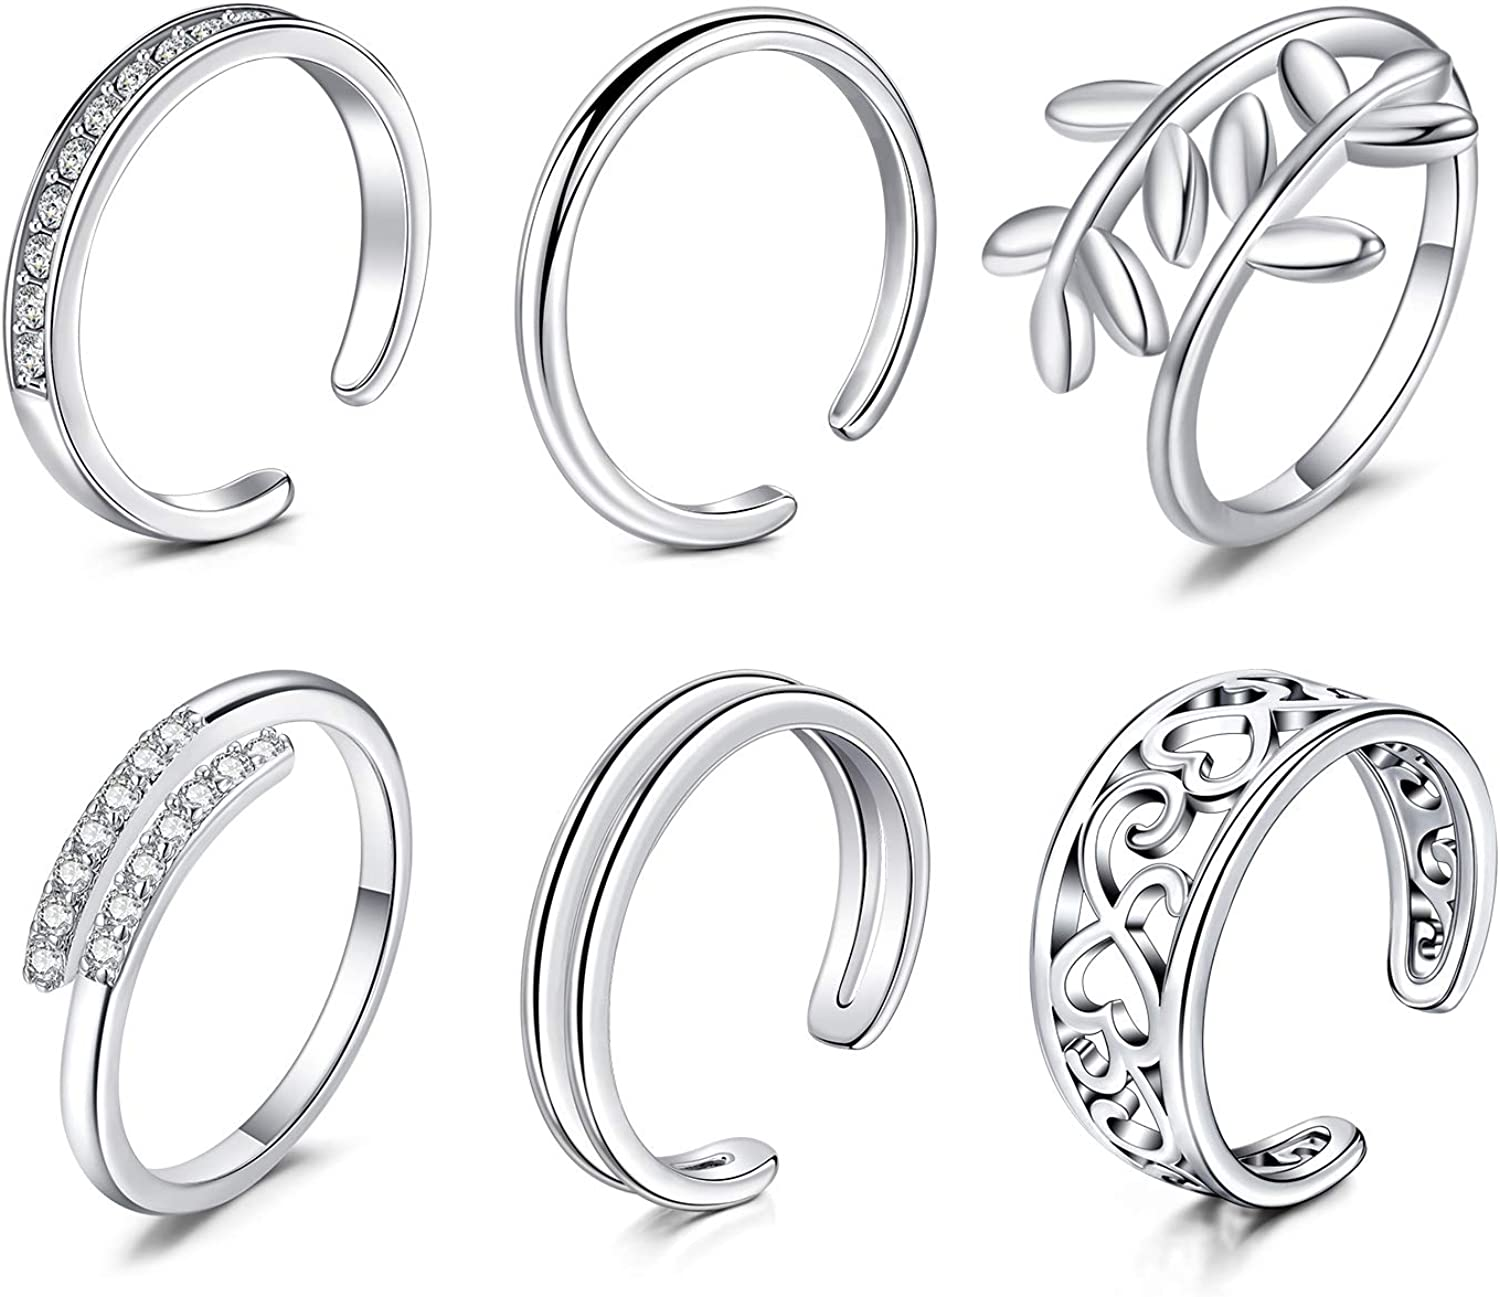 Longita Adjustable Toe Rings for Women Knuckle Tail Ring Simple Open Band Flower Fingers Joint Hypoallergenic Sandals Foot Jewelry